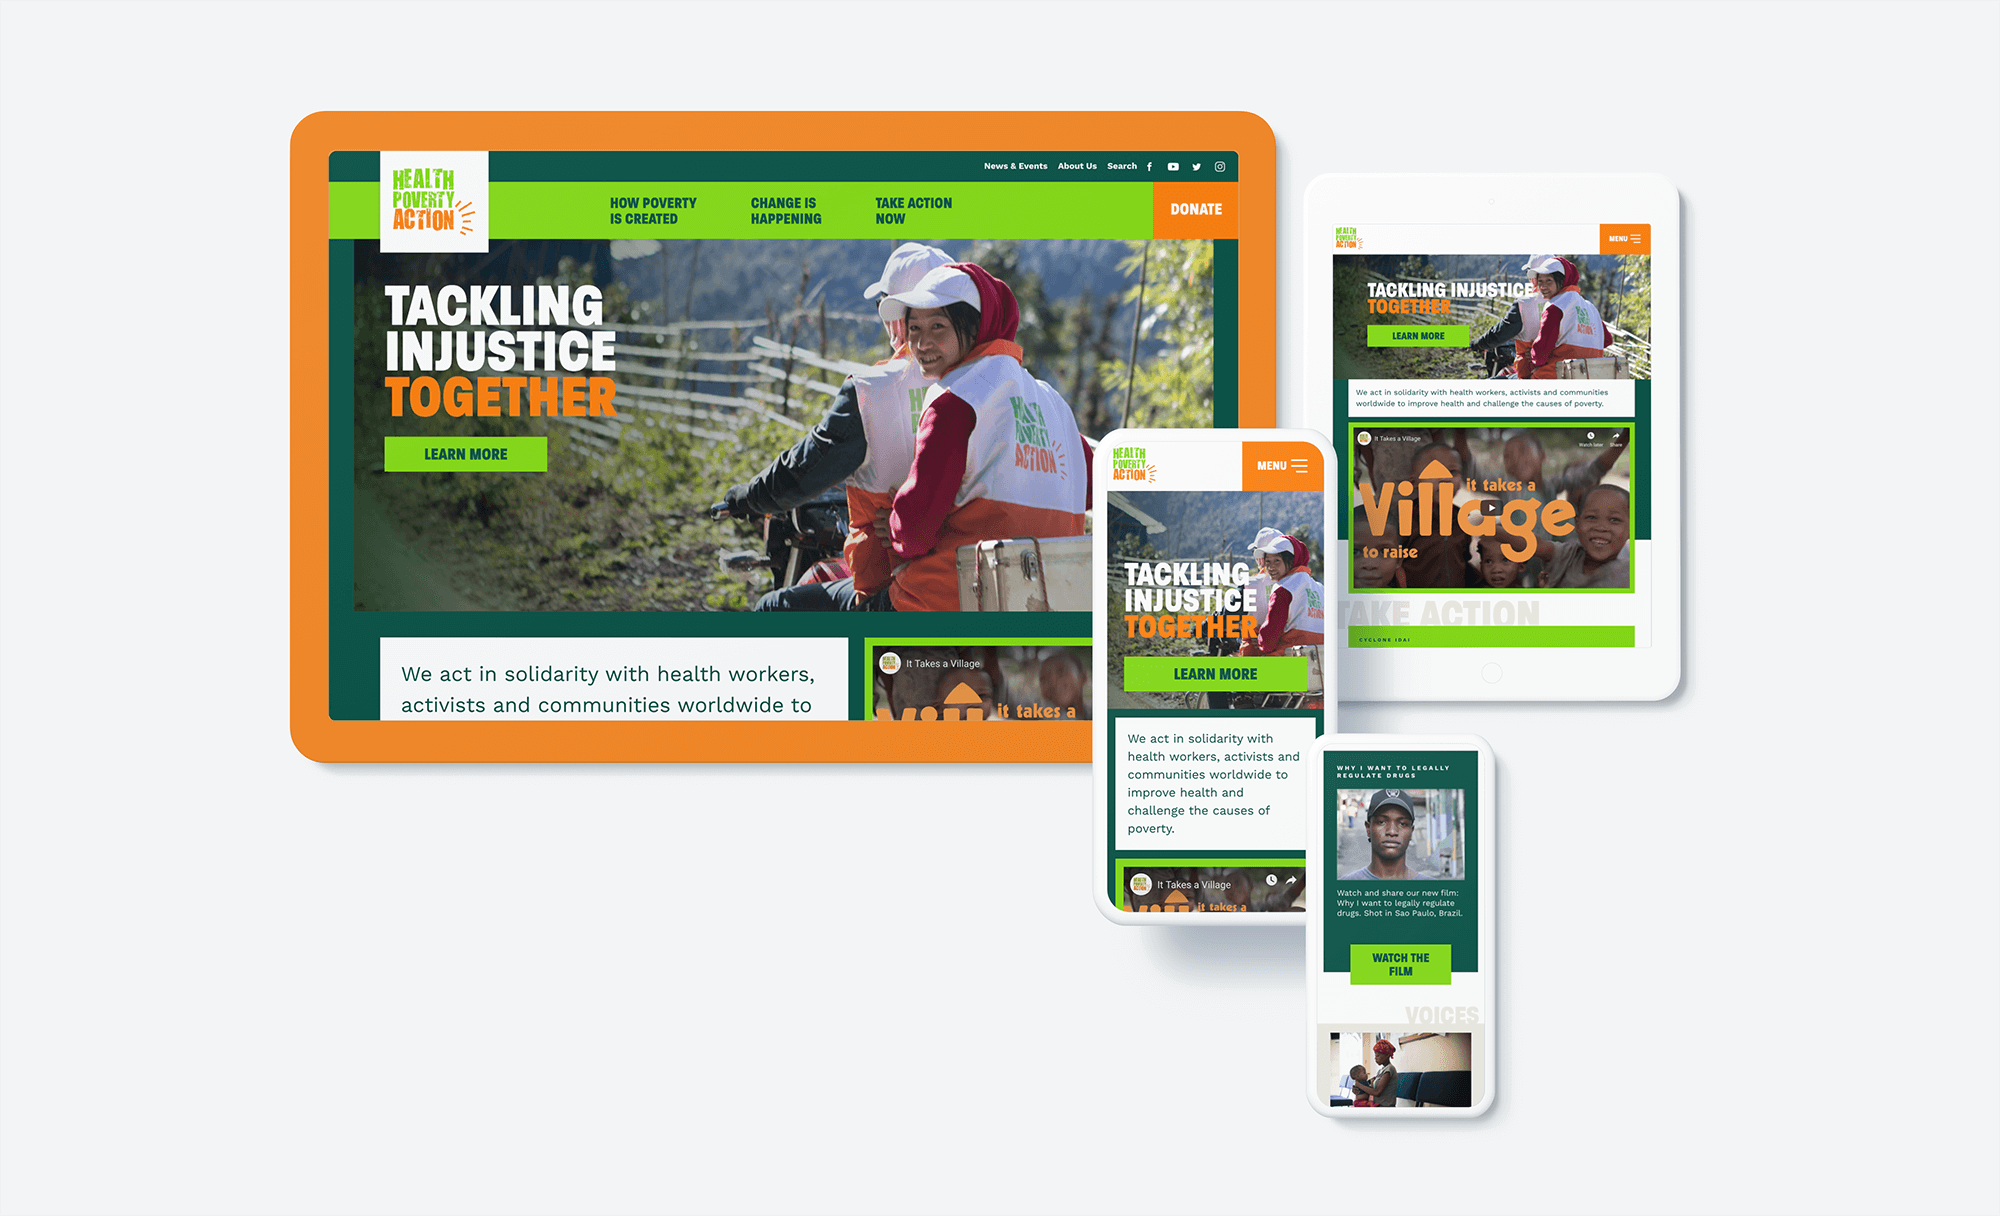 The Health Poverty Action site as it displays across devices